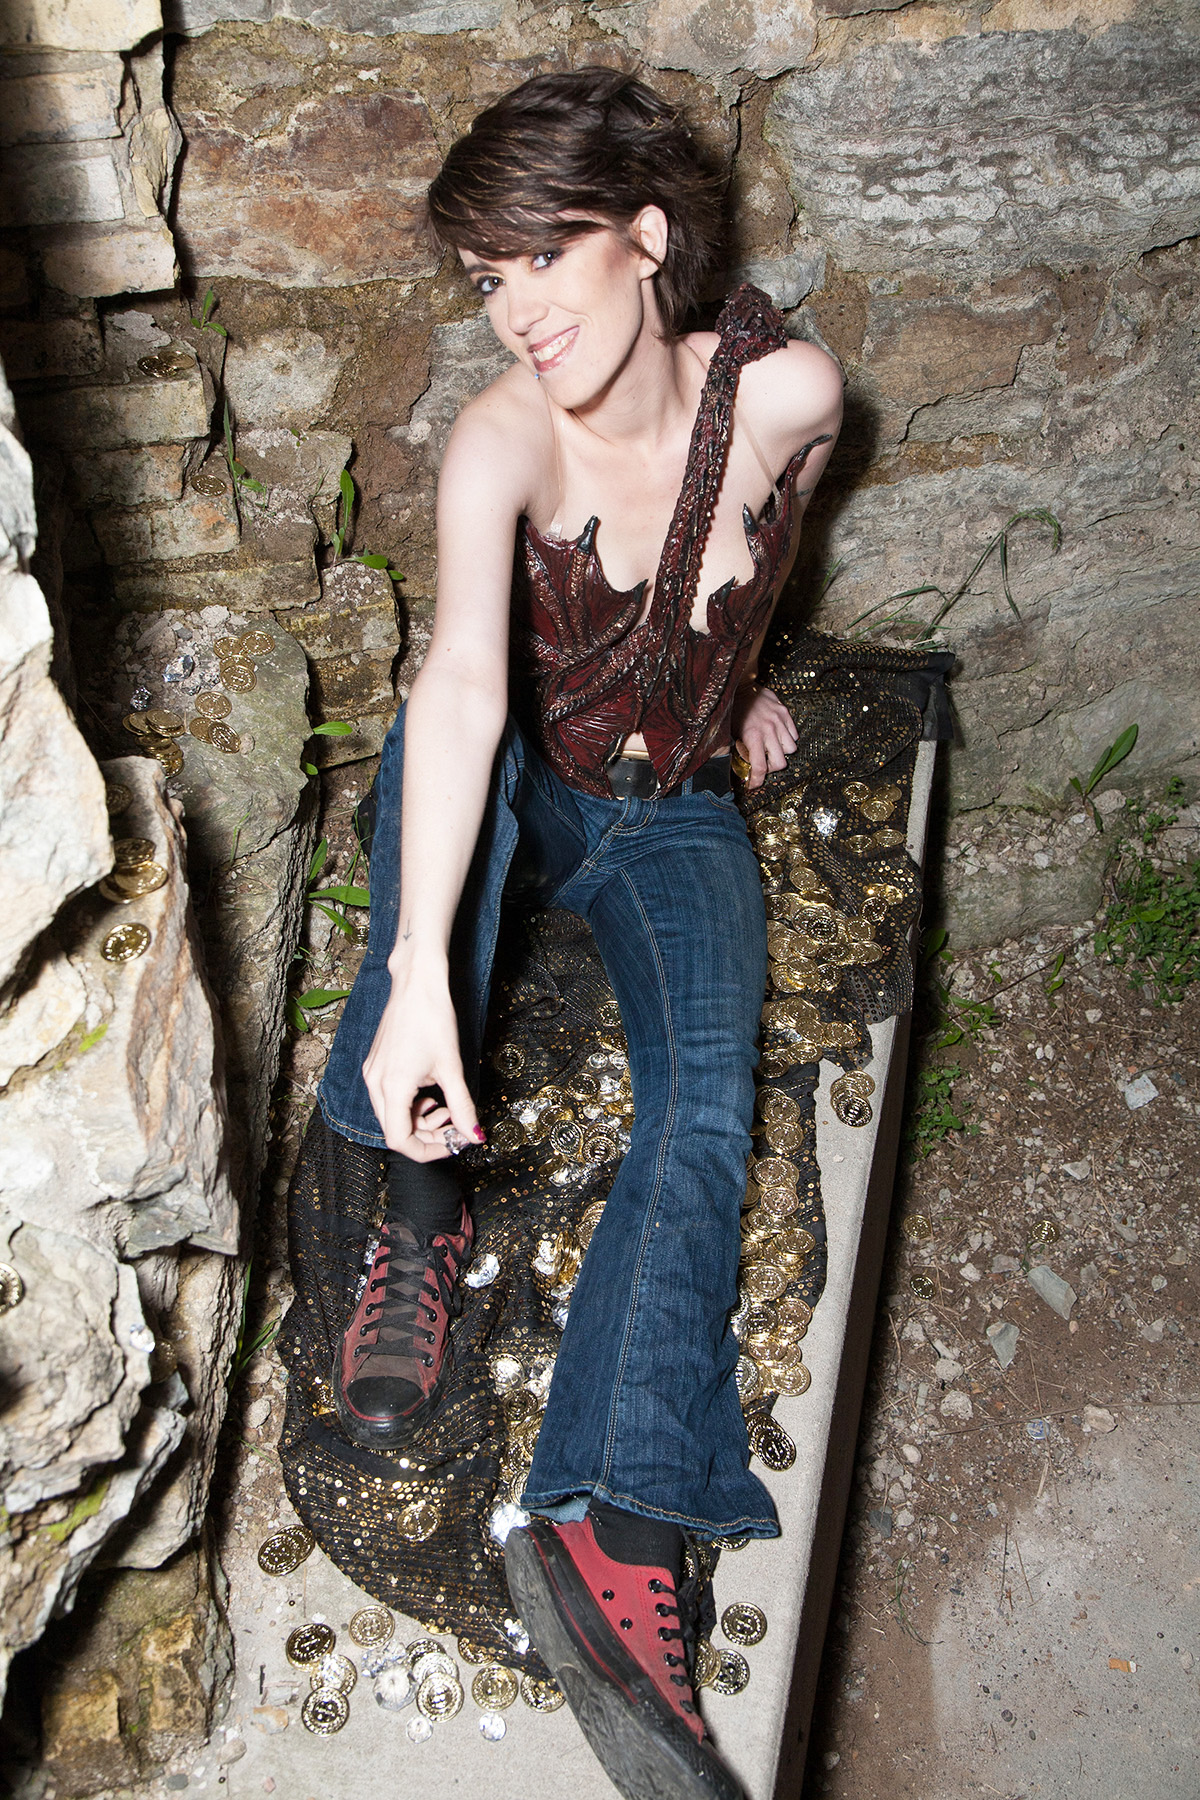 A beautiful young woman with short hair is sitting on a pile of rocks, in front of a rock retaining wall, wearing a dark burgundy latex, 3D sculpted dragon top. It wraps around her torso, and looks like Smaug.